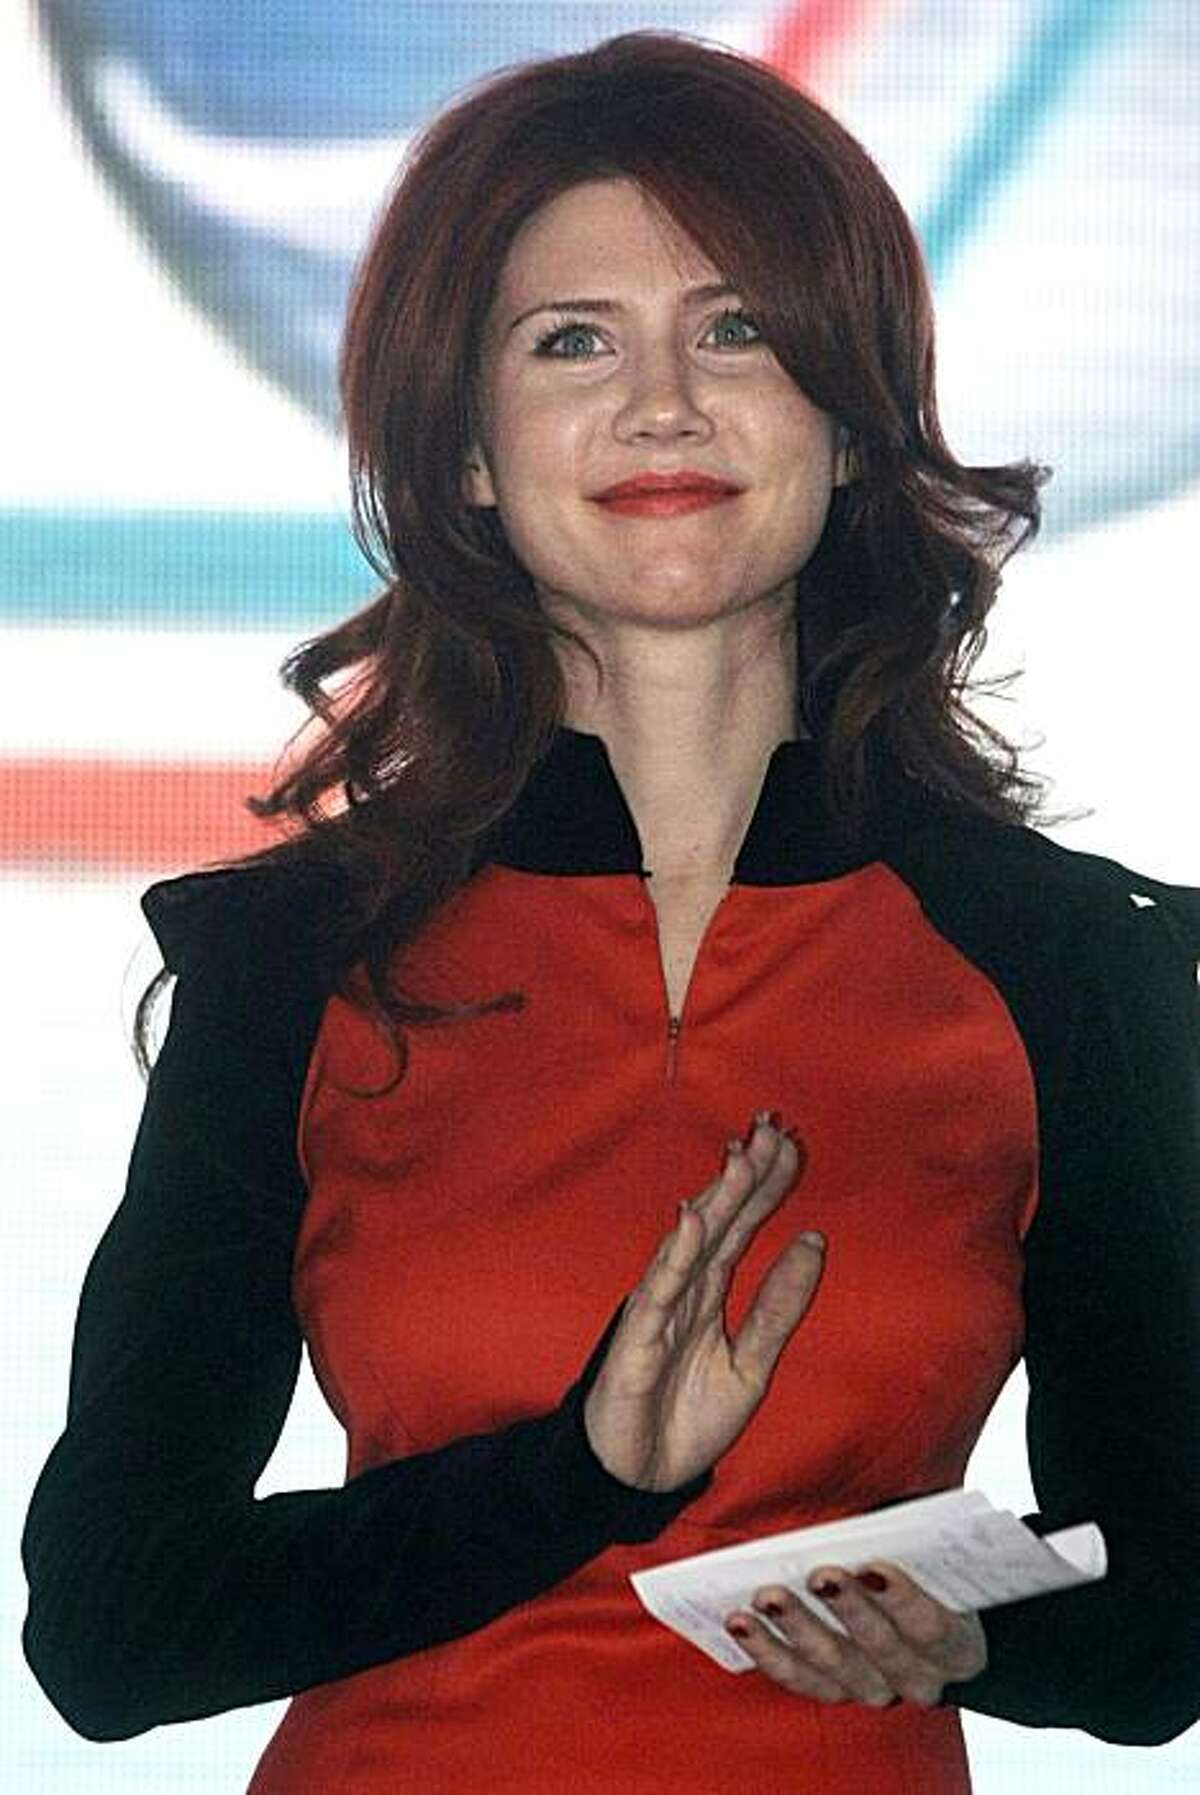 FILE - In this Dec. 22, 2010 file photo, Anna Chapman, who was deported from the U.S. on charges of espionage, is seen on stage during an event with leaders of the Young Guards, a pro-Kremlin youth movement she joined, in Moscow, Russia. Russian spy AnnaChapman is enticing viewers to turn into her new television show by promising to reveal